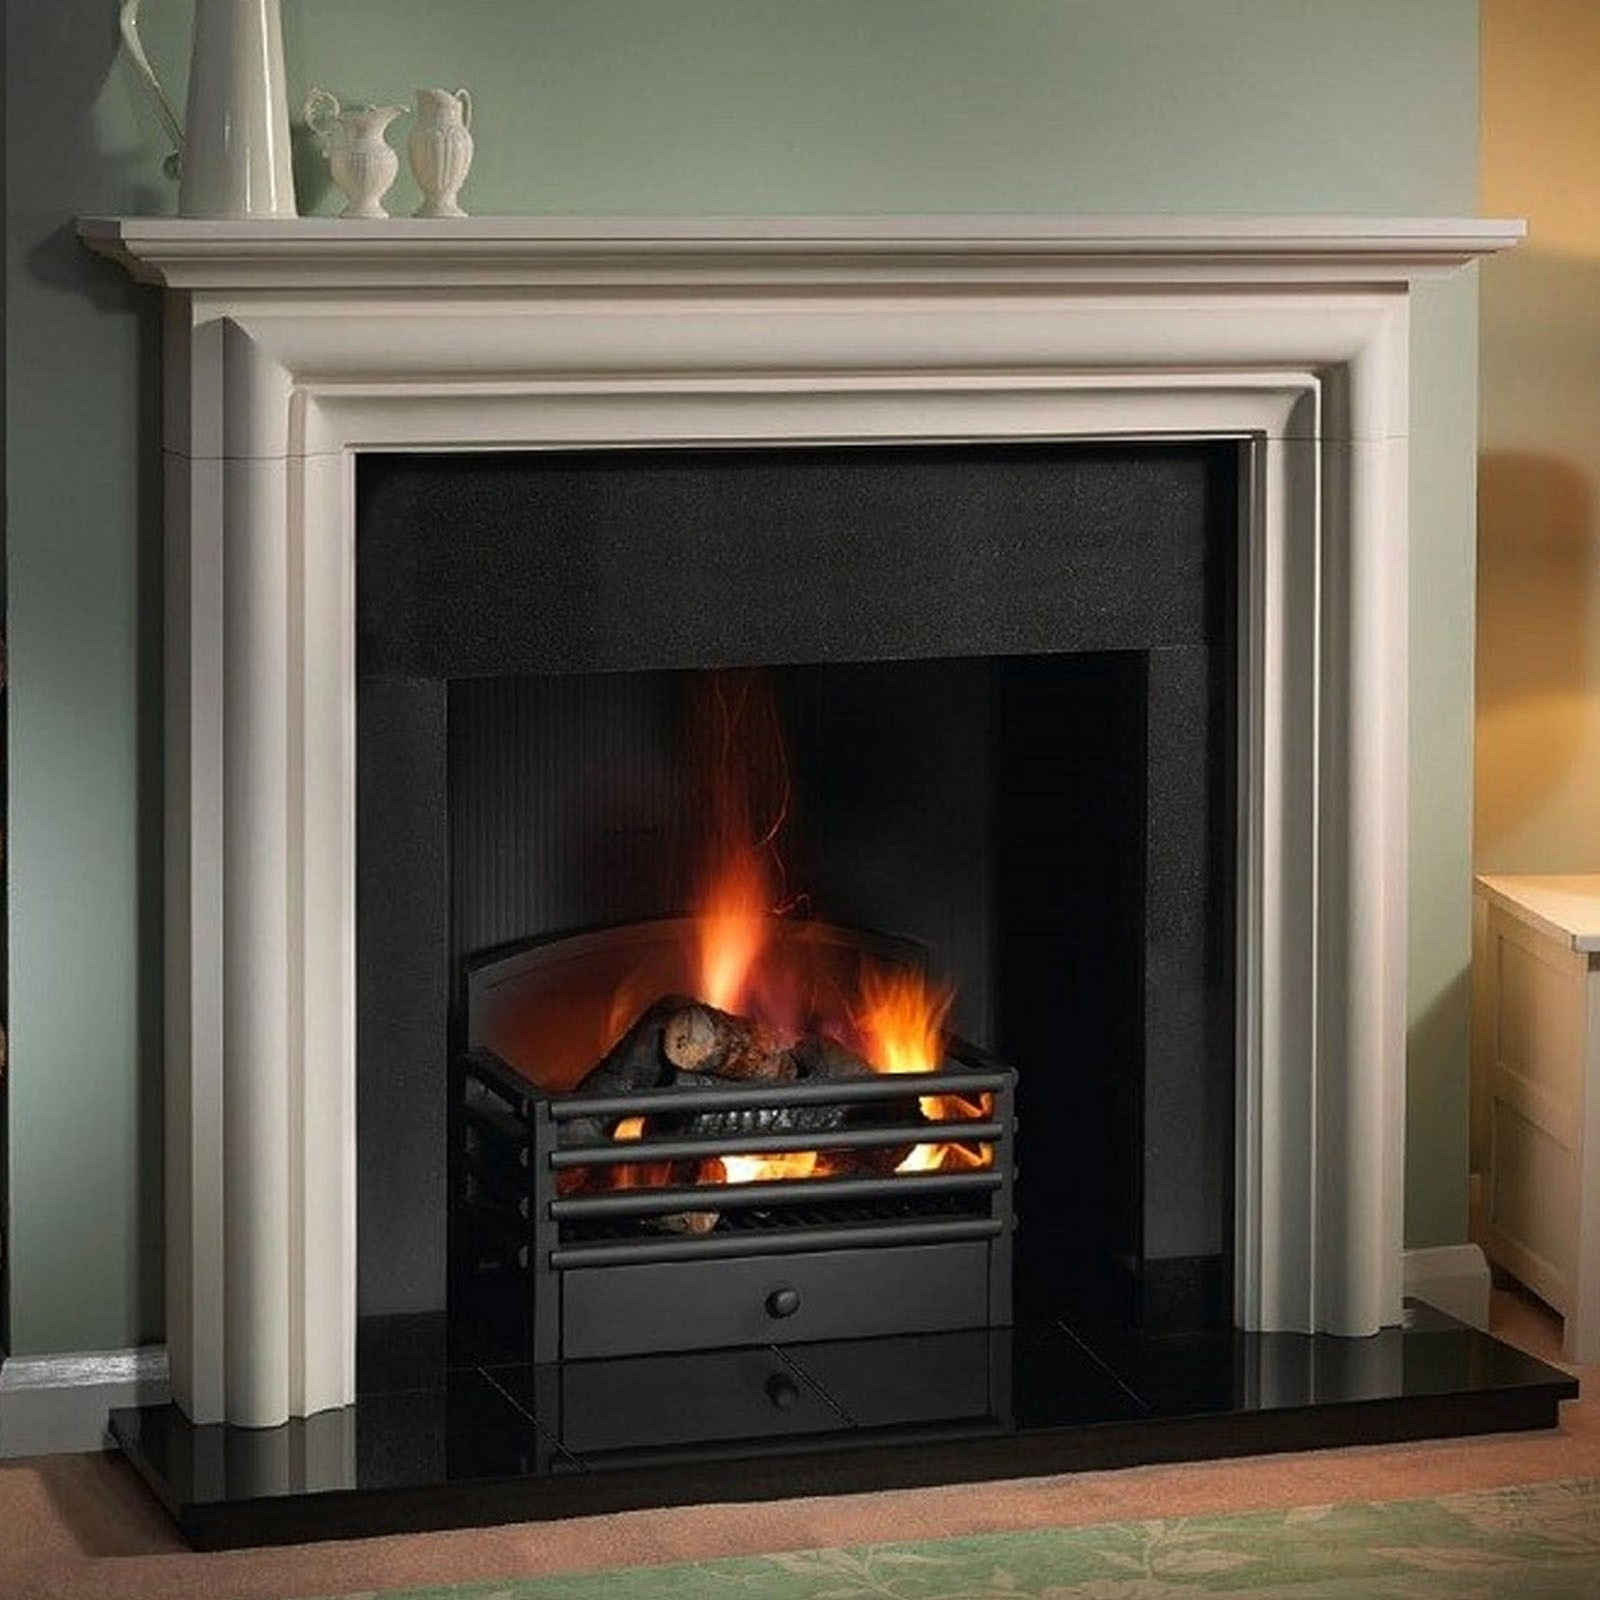 100 natural material gallery modena limestone fireplace